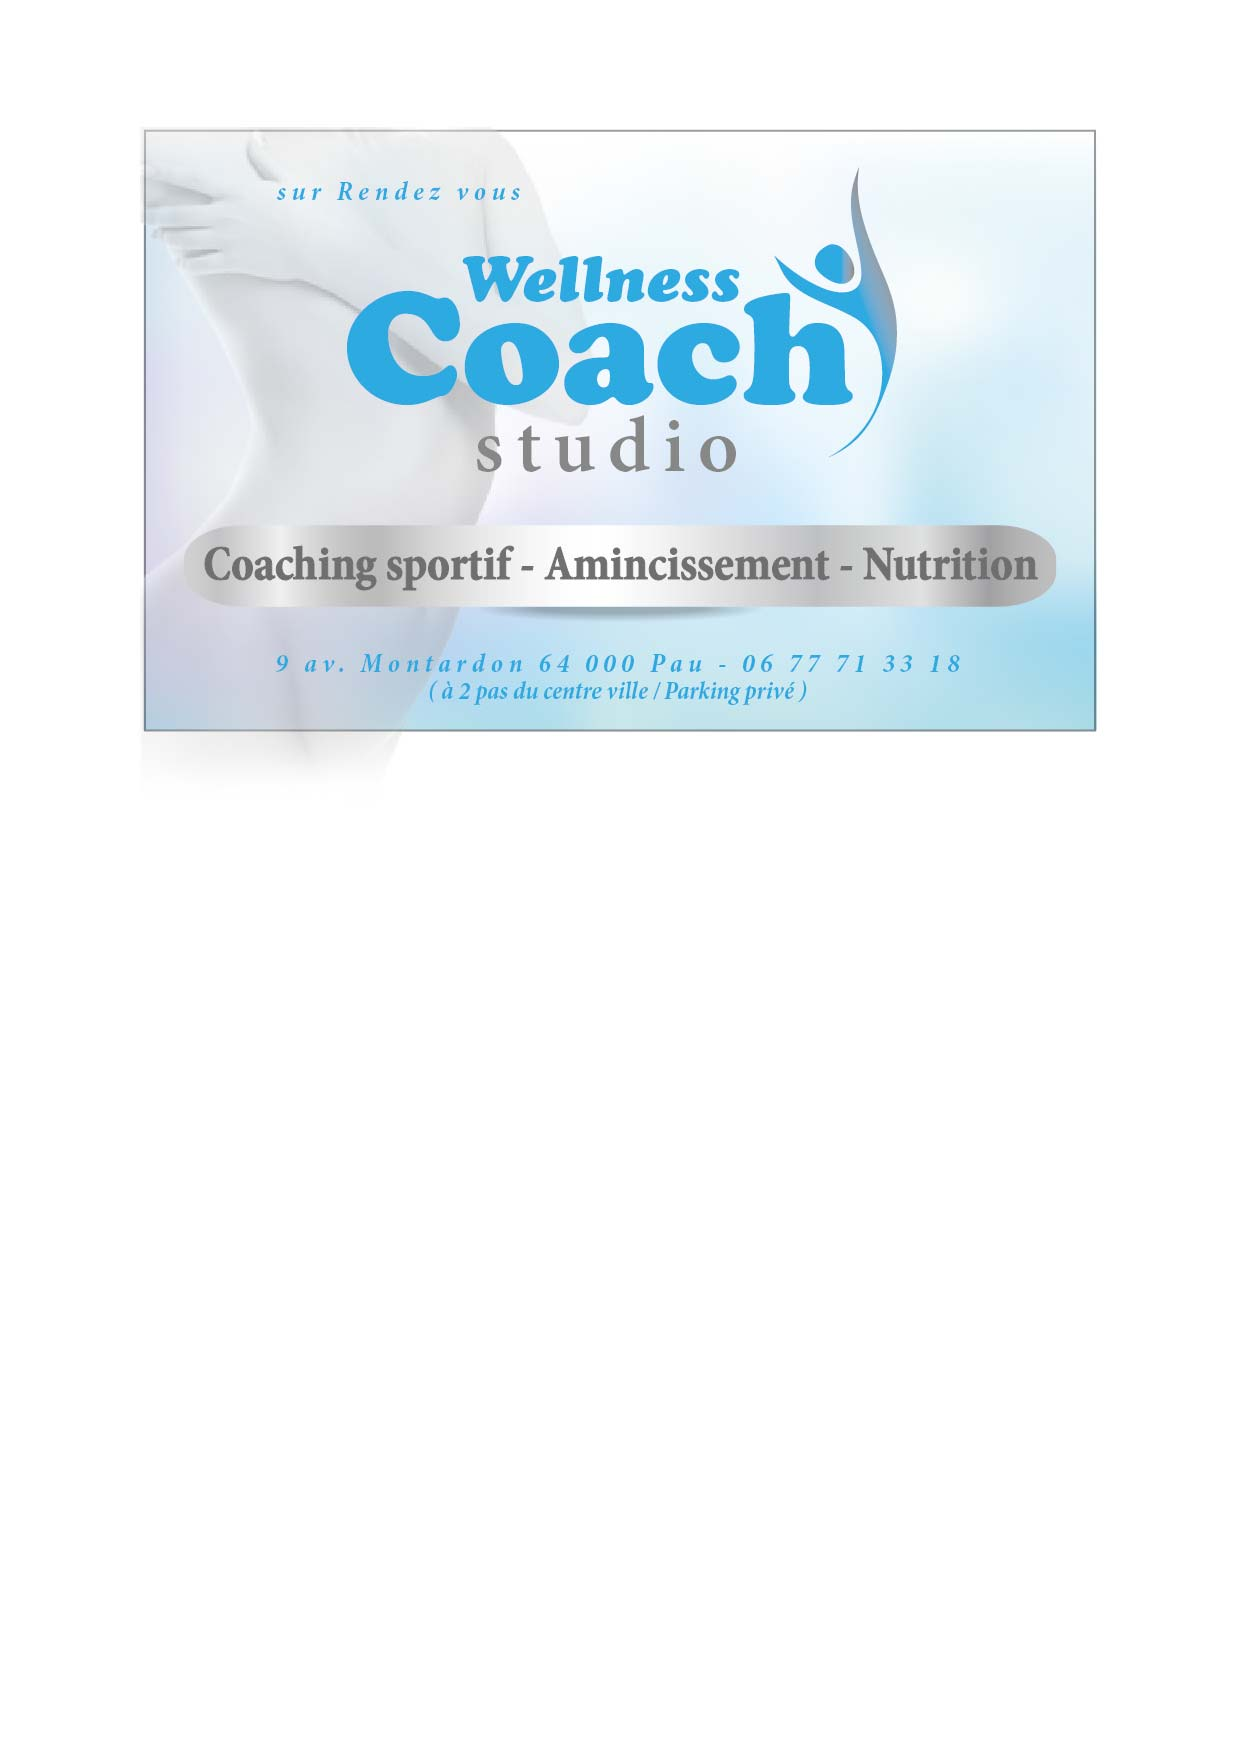 Wellness Coach Studio